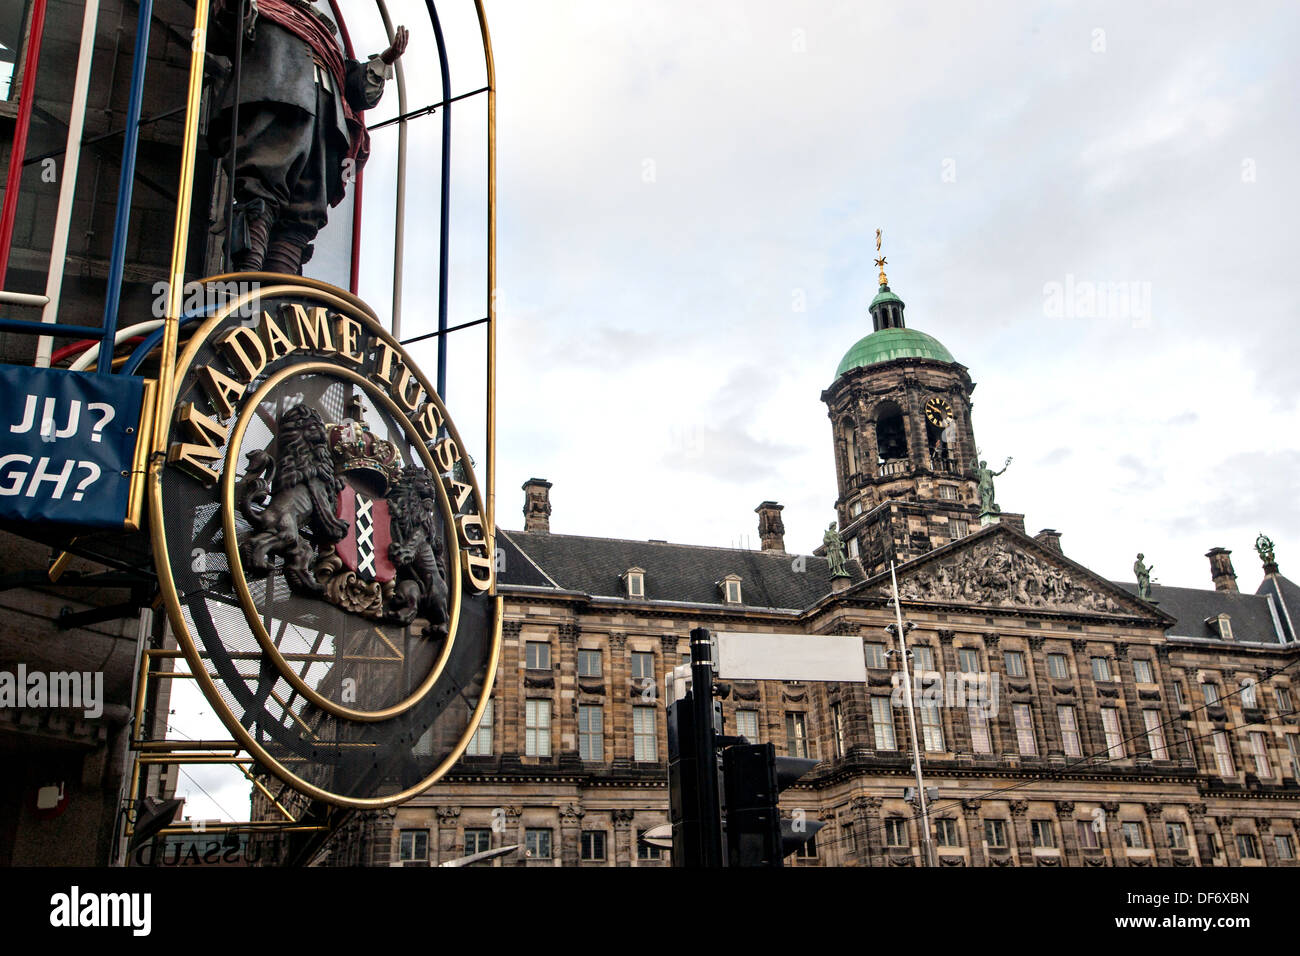 Madame Tussaud and the Royal Palace Dam Square in Amsterdam. - Stock Image